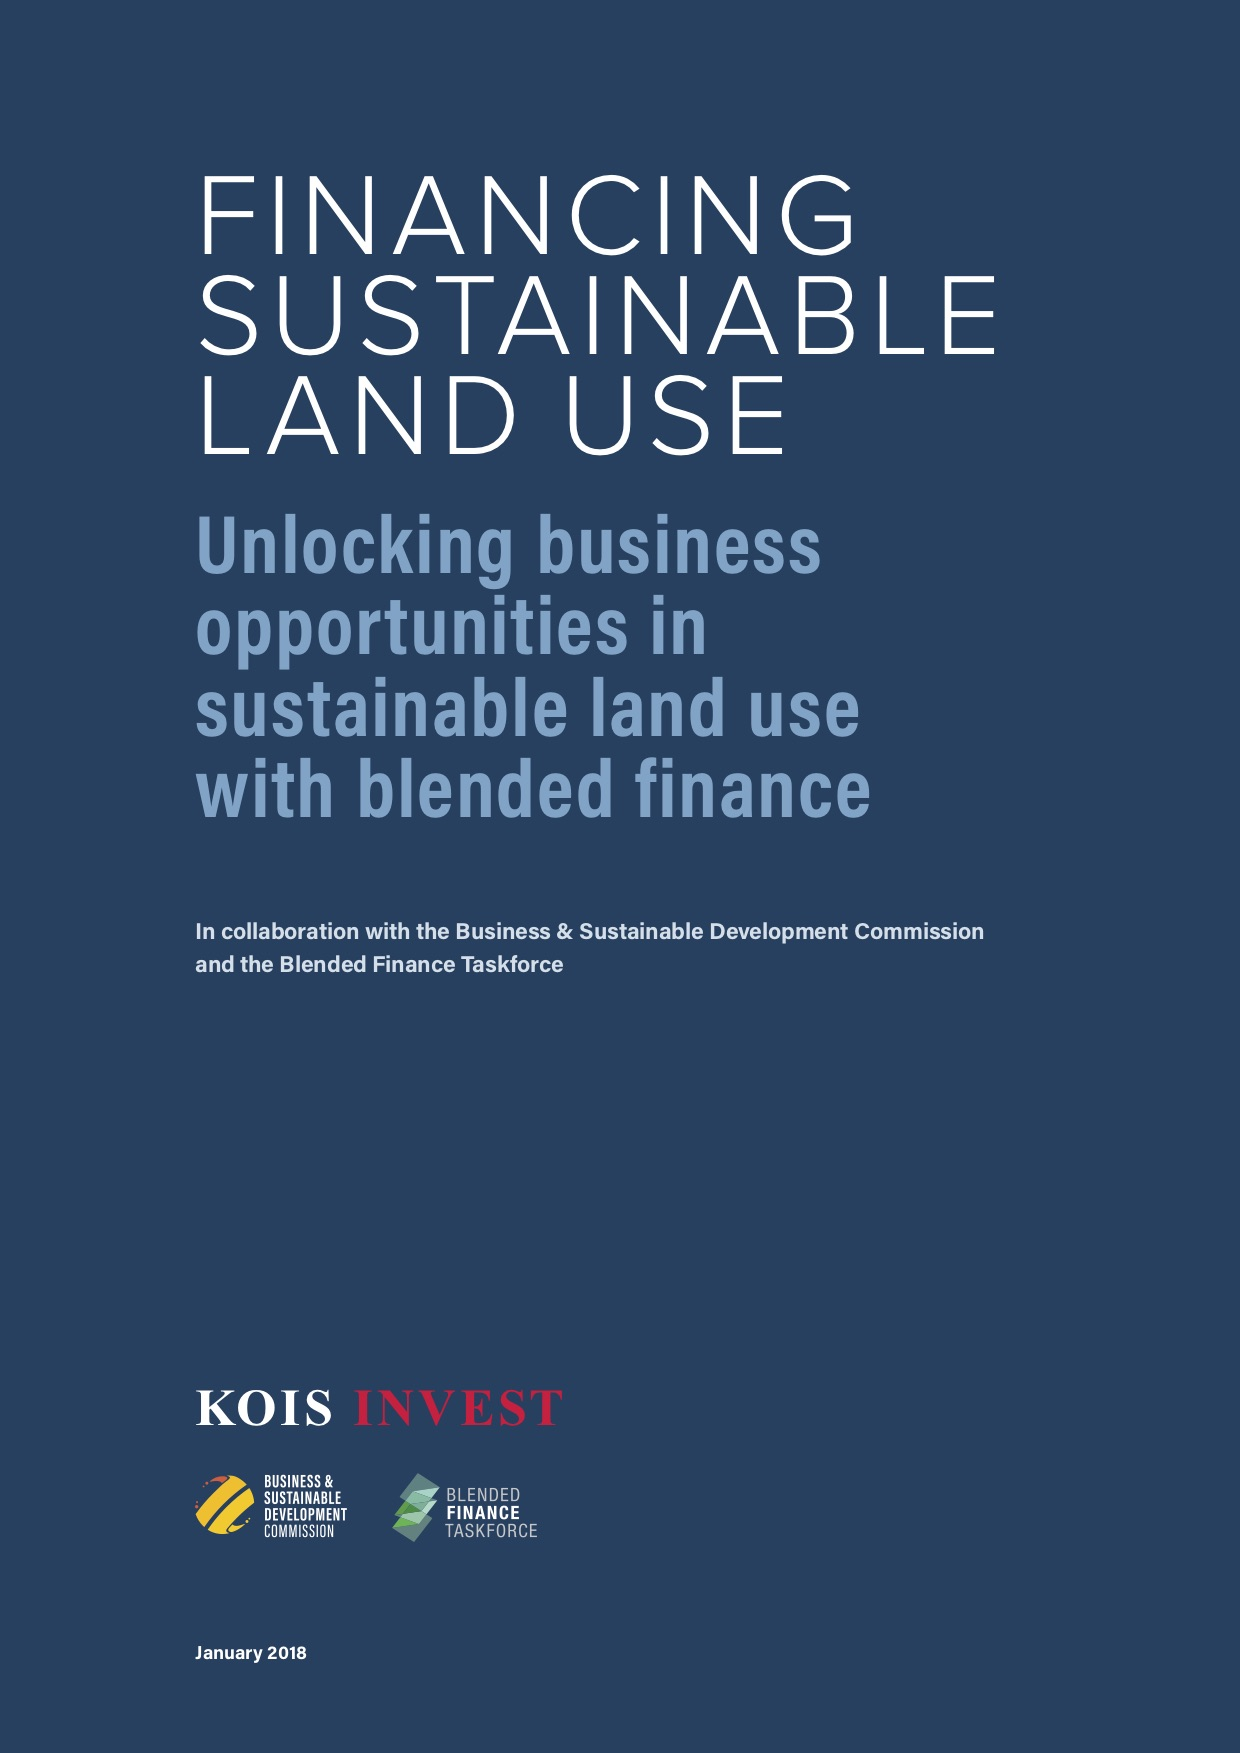 Financing Sustainable Land Use: Unlocking business opportunities in sustainable land use with blended finance